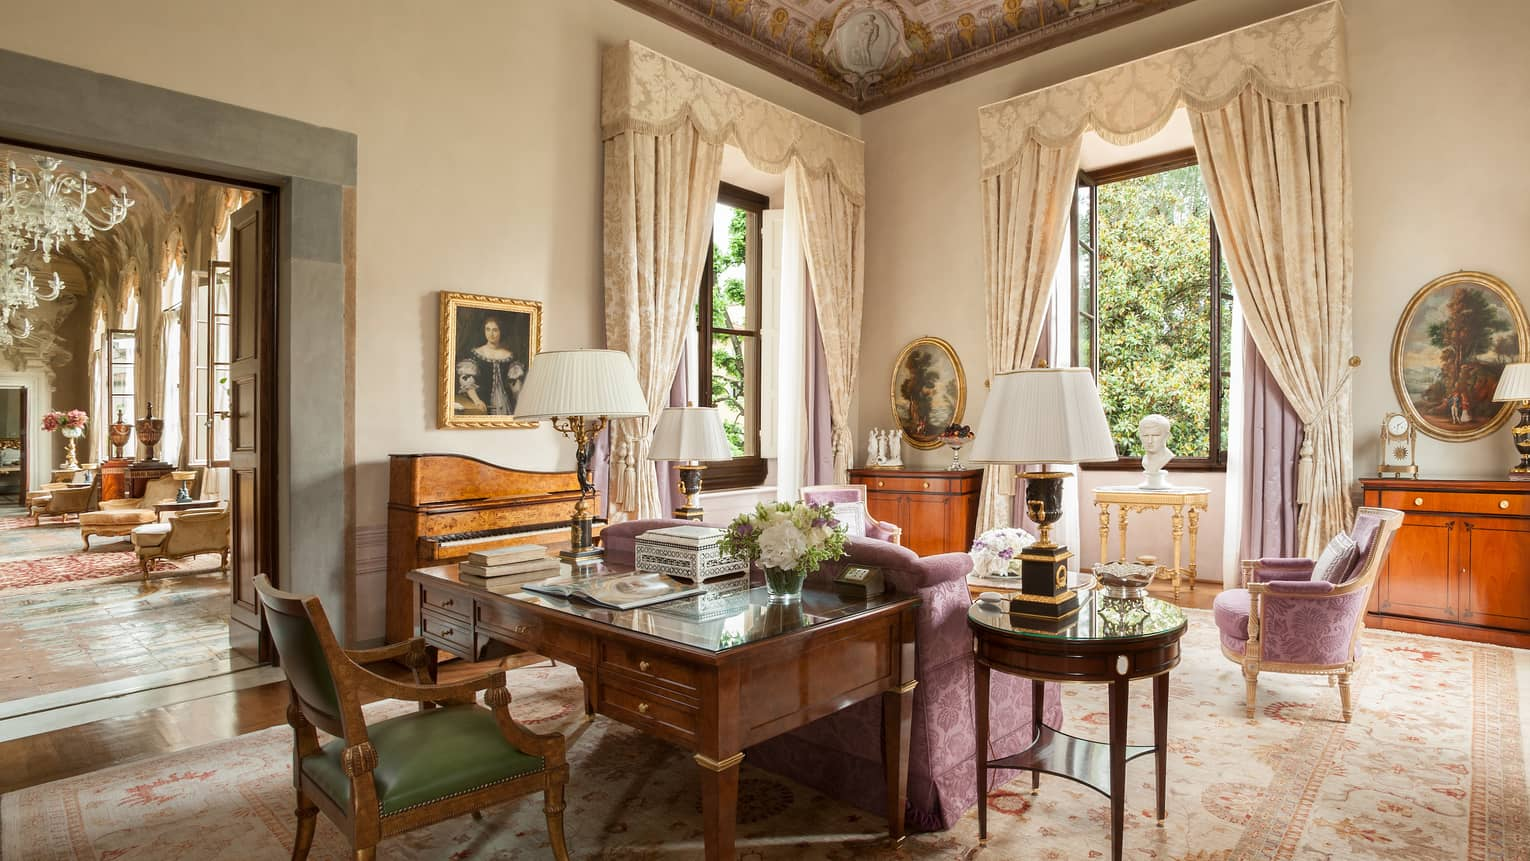 Royal Suite large wood work desk, pink silk sofa and chairs, tall windows under vaulted ceilings